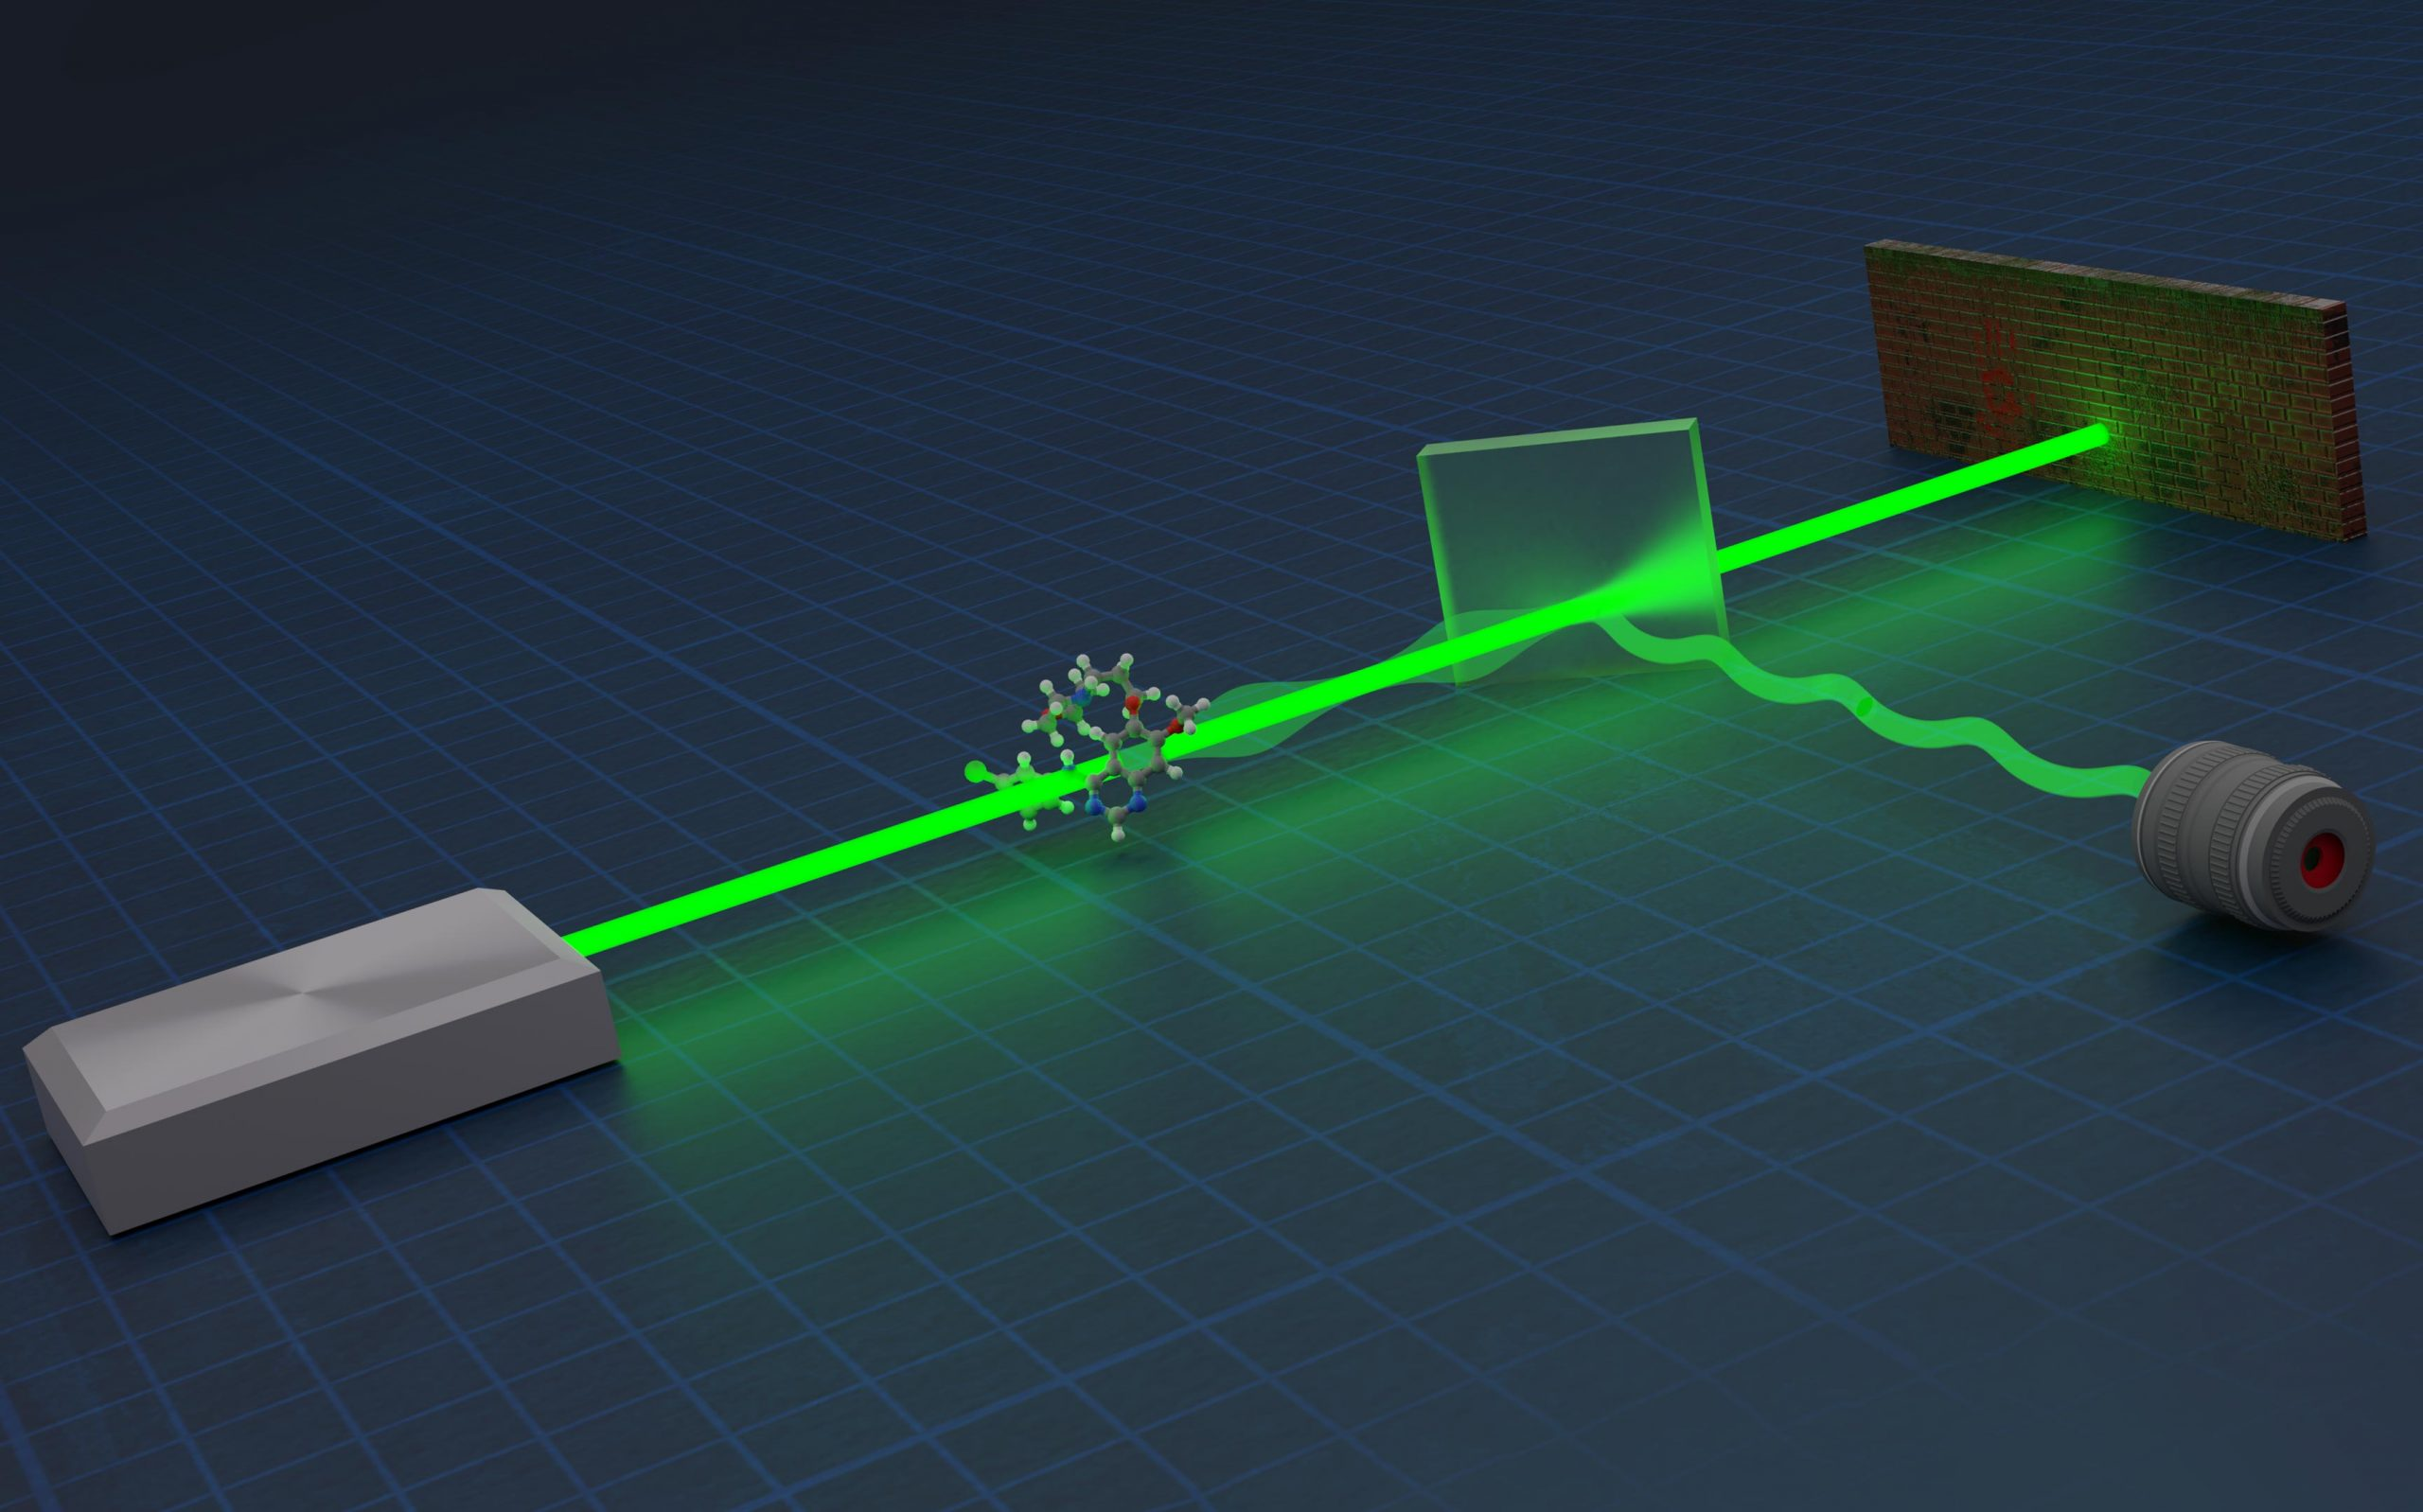 """Ultra-Precise Measurements Powered by Quantum Negativity – """"Highly Counterintuitive and Truly Amazing!"""""""